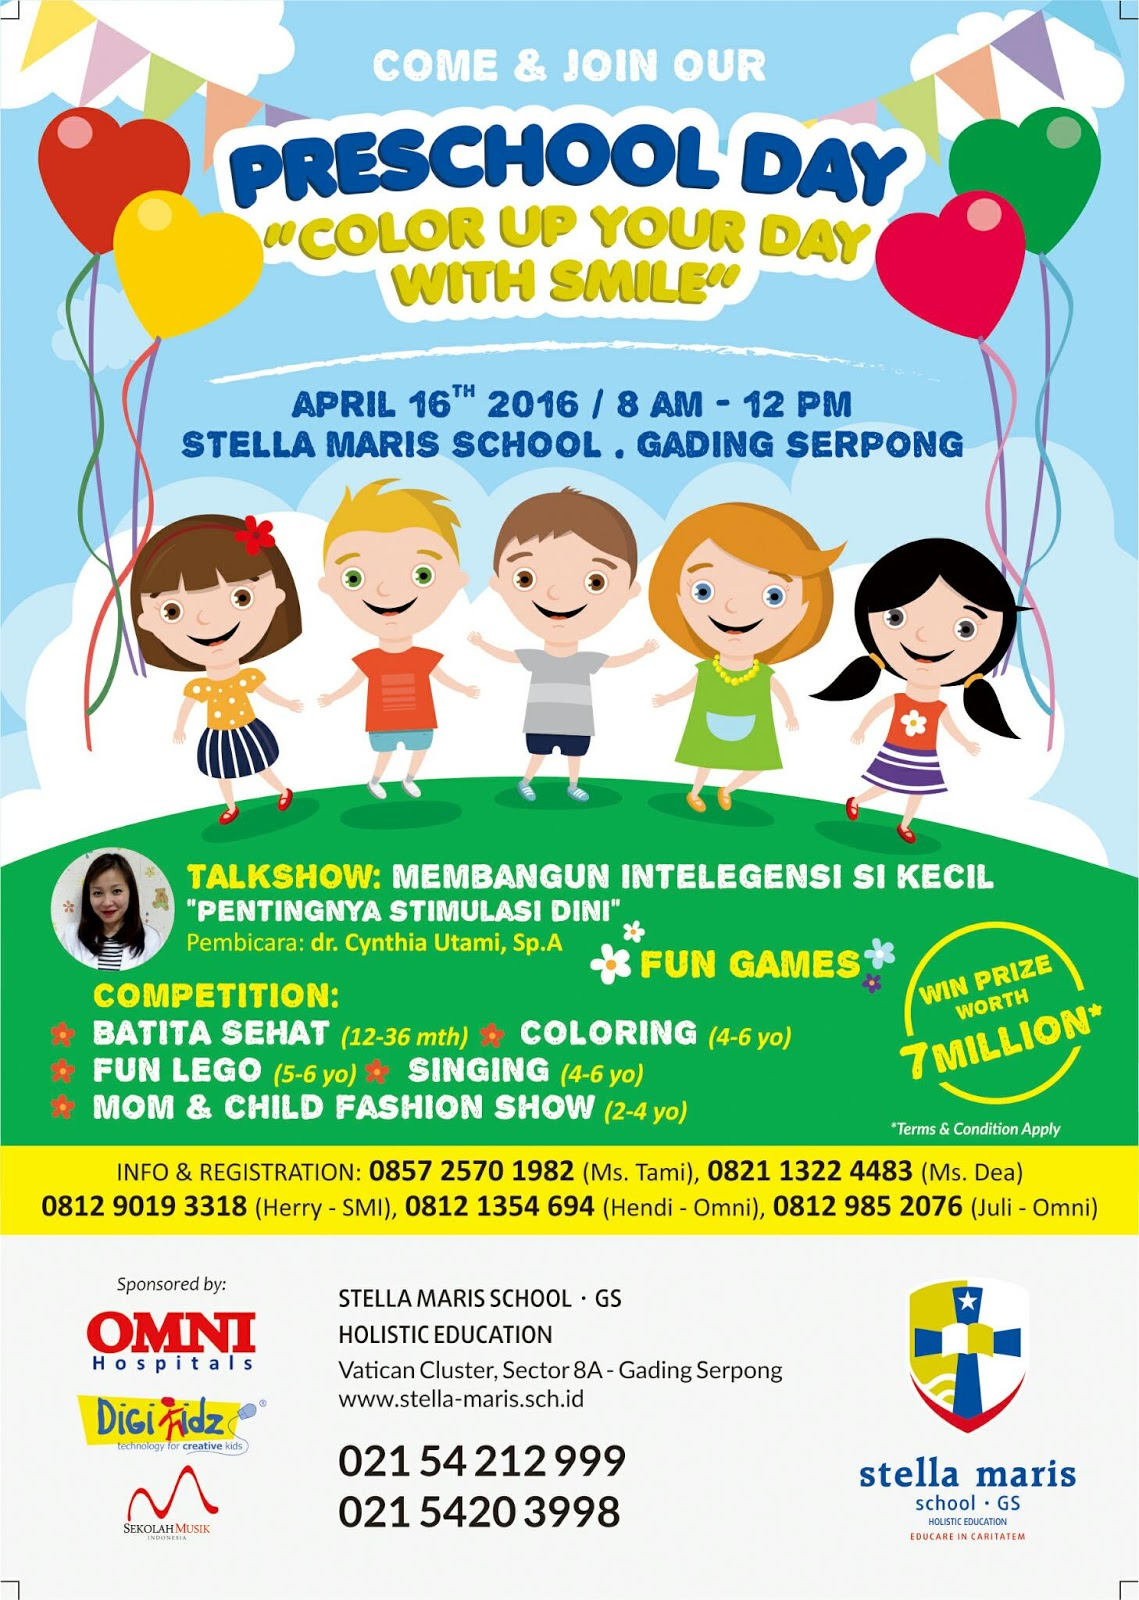 Preschool Day Stella Maris Gading Serpong